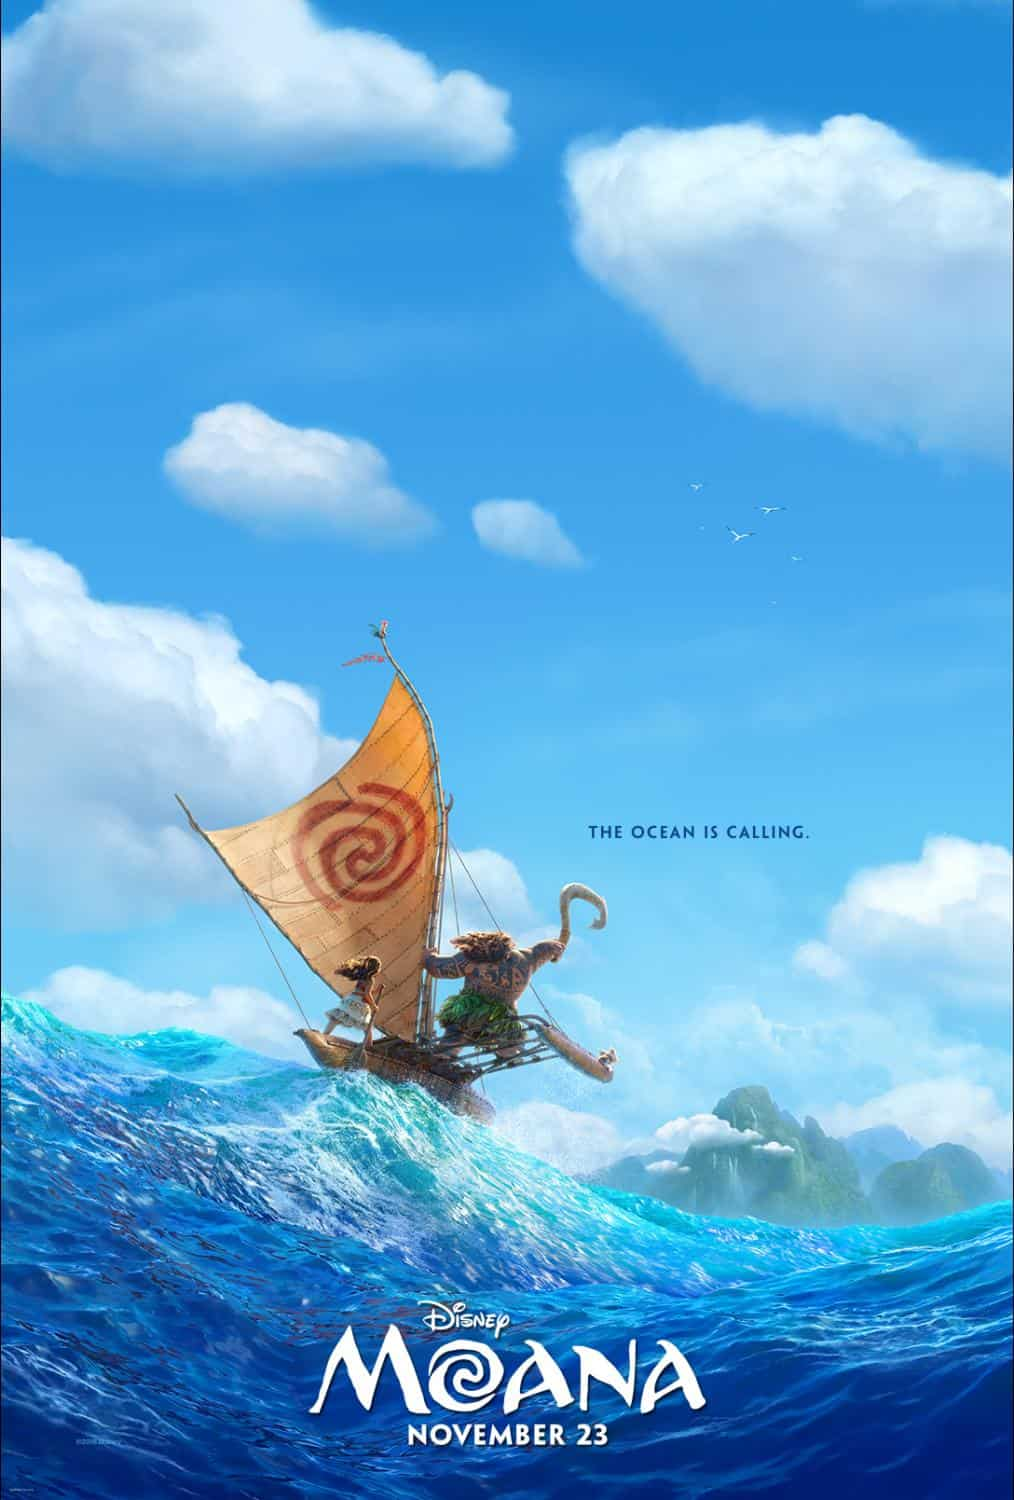 Moana Helps Break Box Office Records